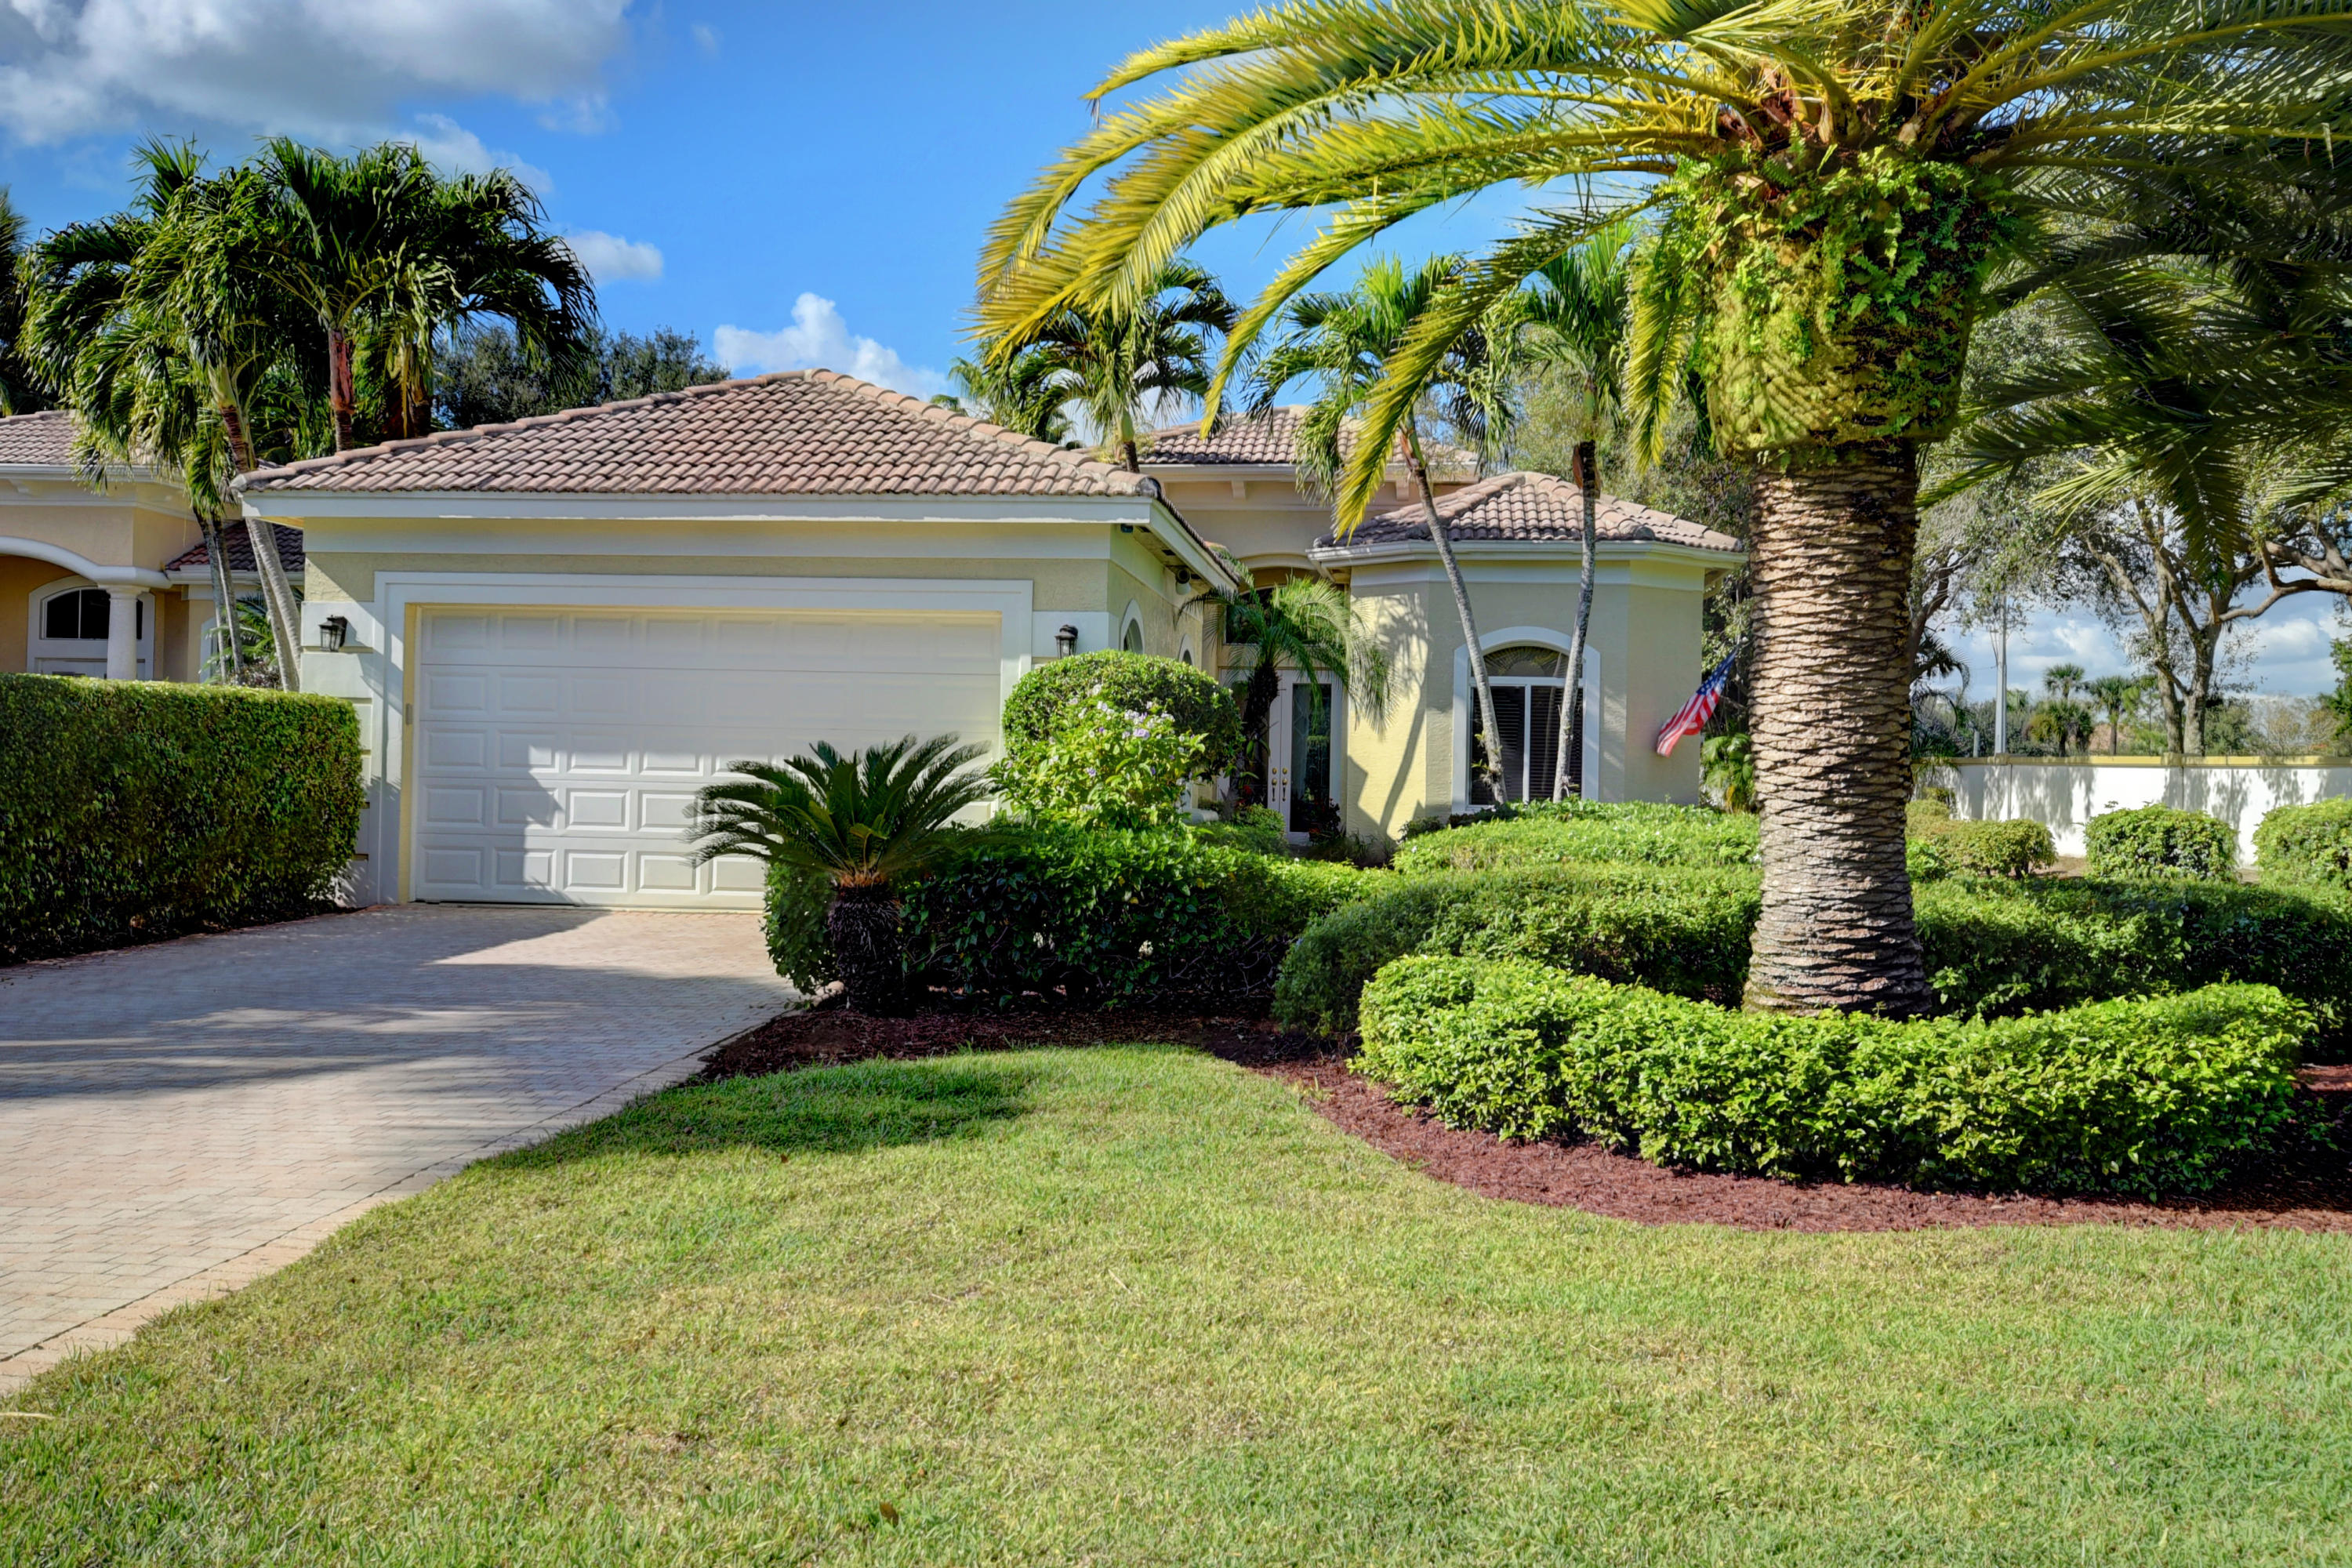 7831 Villa D Este Way  Delray Beach, FL 33446